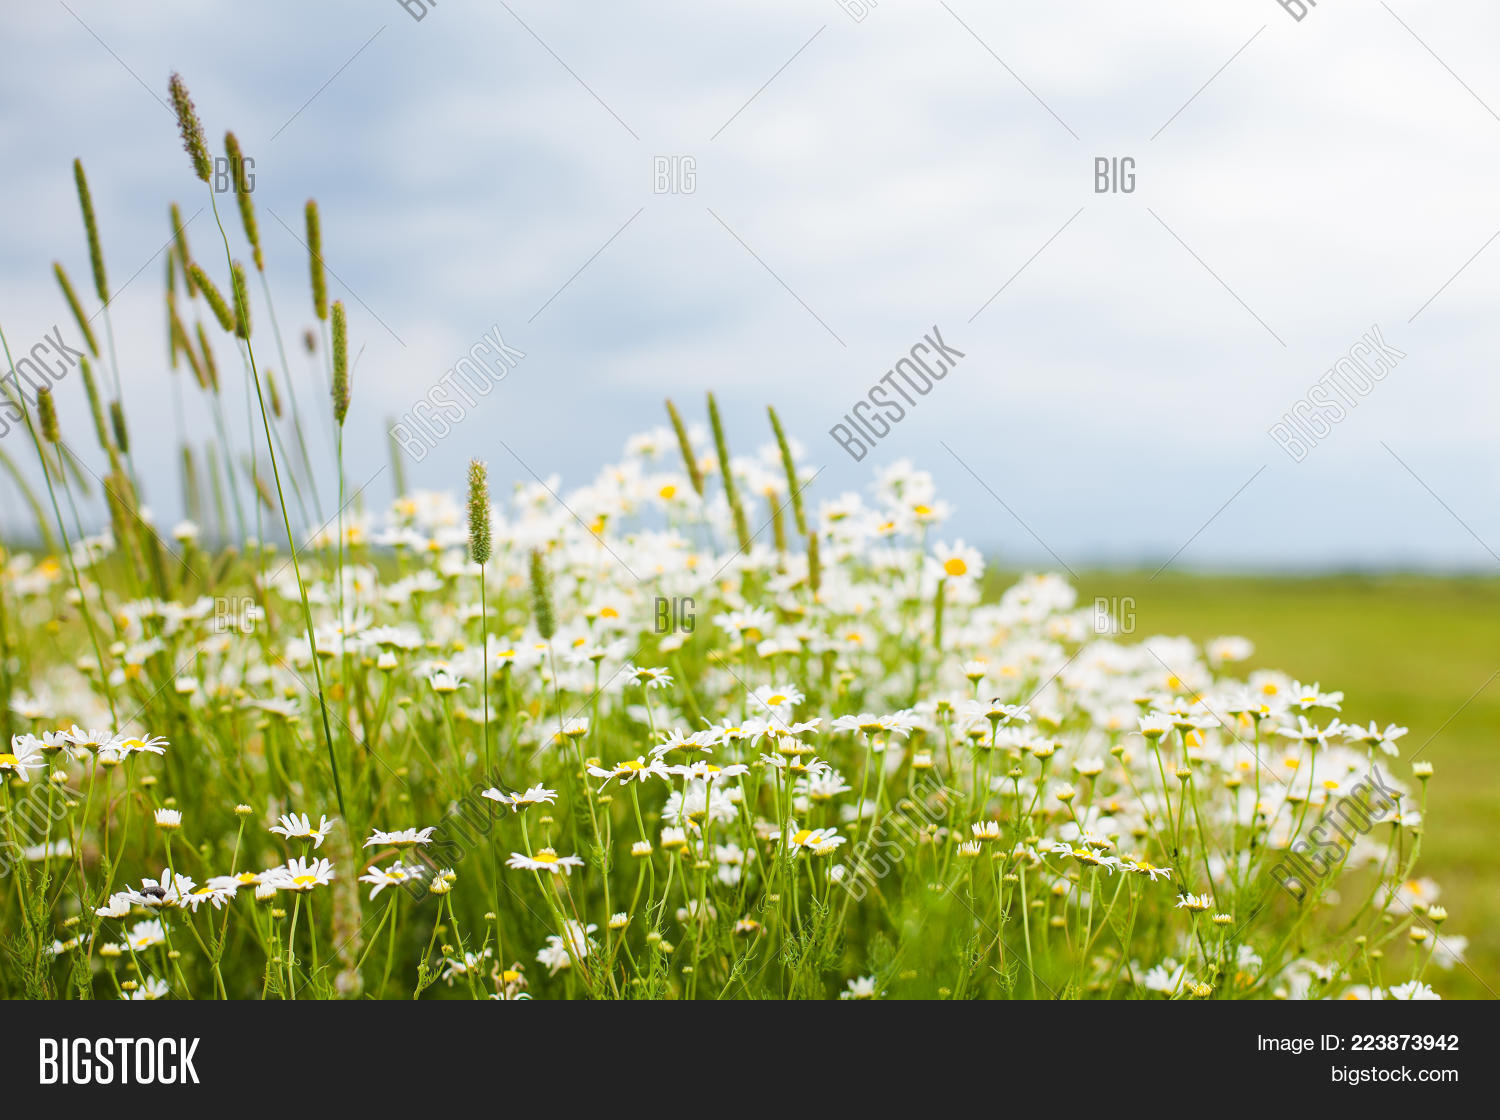 Beautiful Rustic Nature Summer Flower Background With Selective Focus Landscape Flowering Daisies White